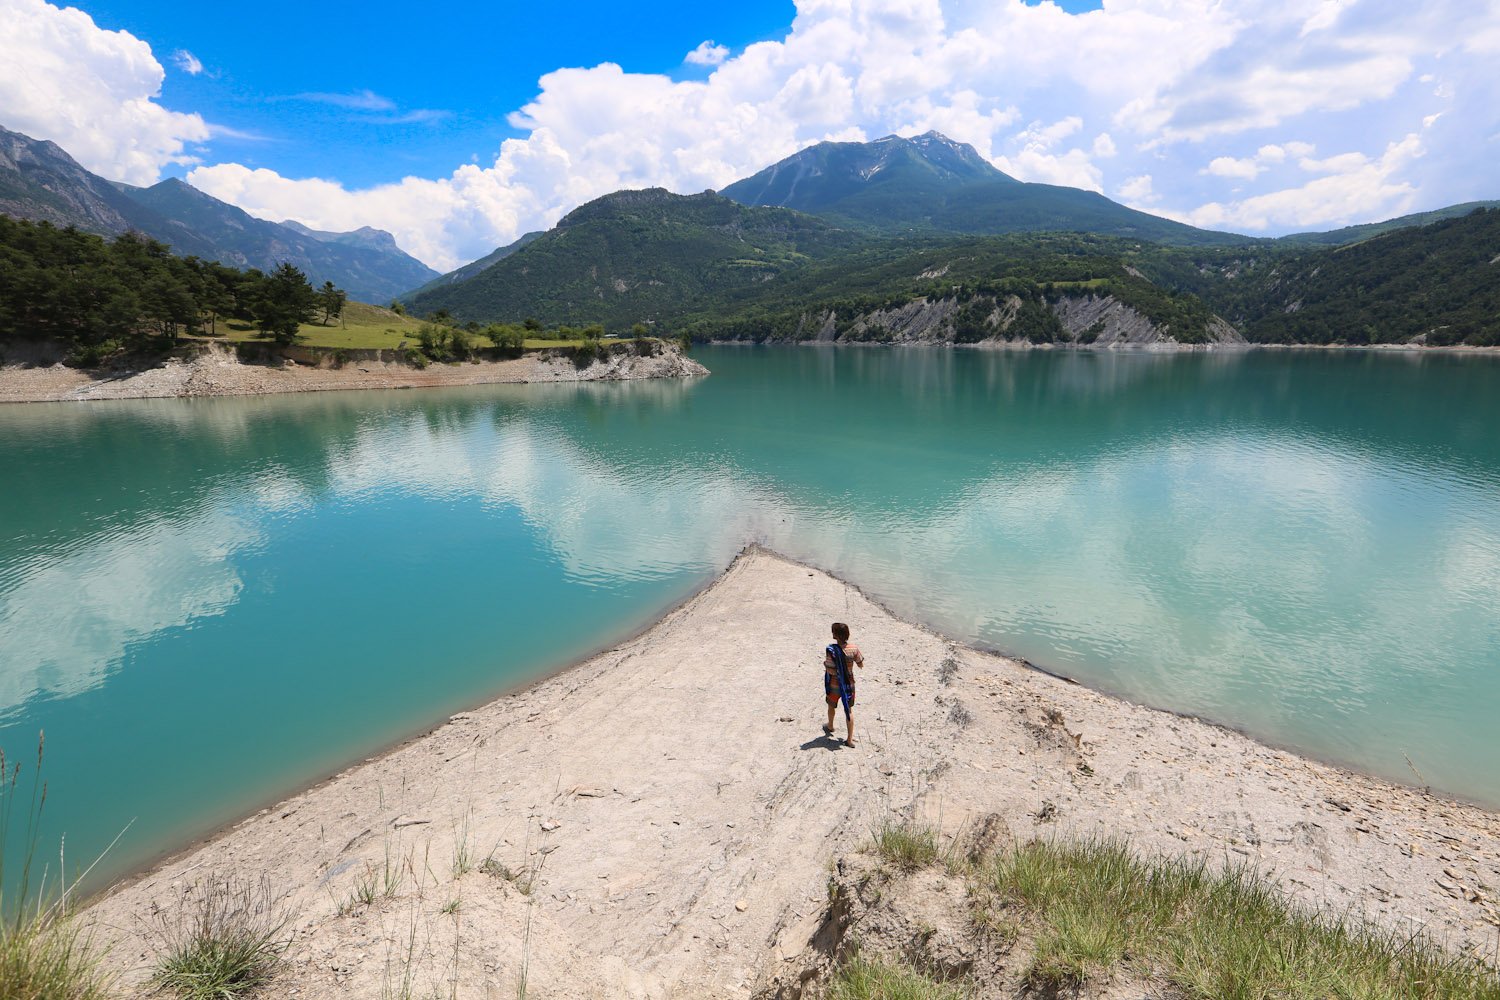 Nico enjoys the view on the lake in the Hautes- Alps Provence just outside of Gap, France.